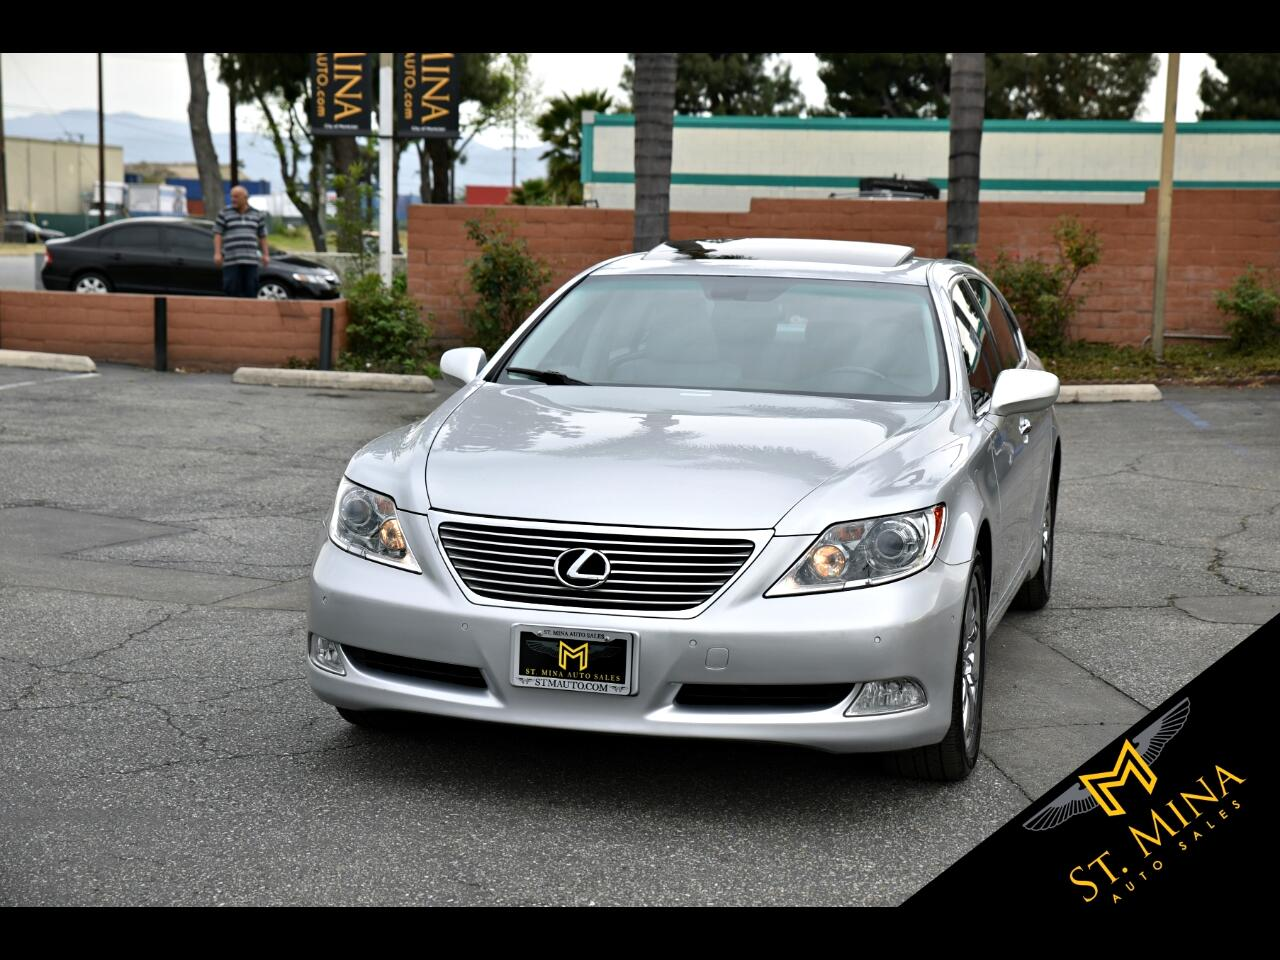 2009 Lexus LS 460 L Luxury Sedan